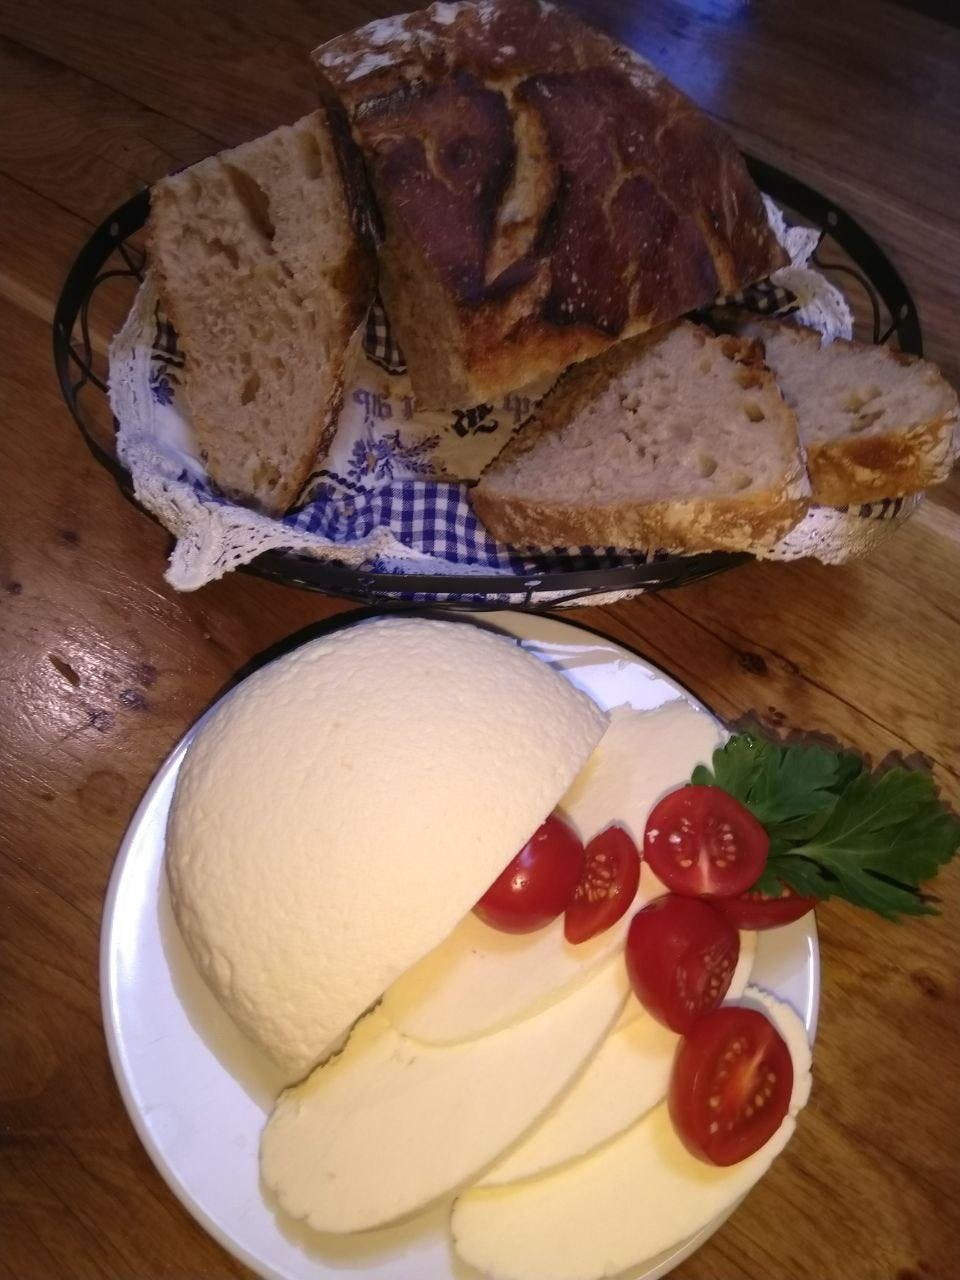 Homemade cheese with homemade bread